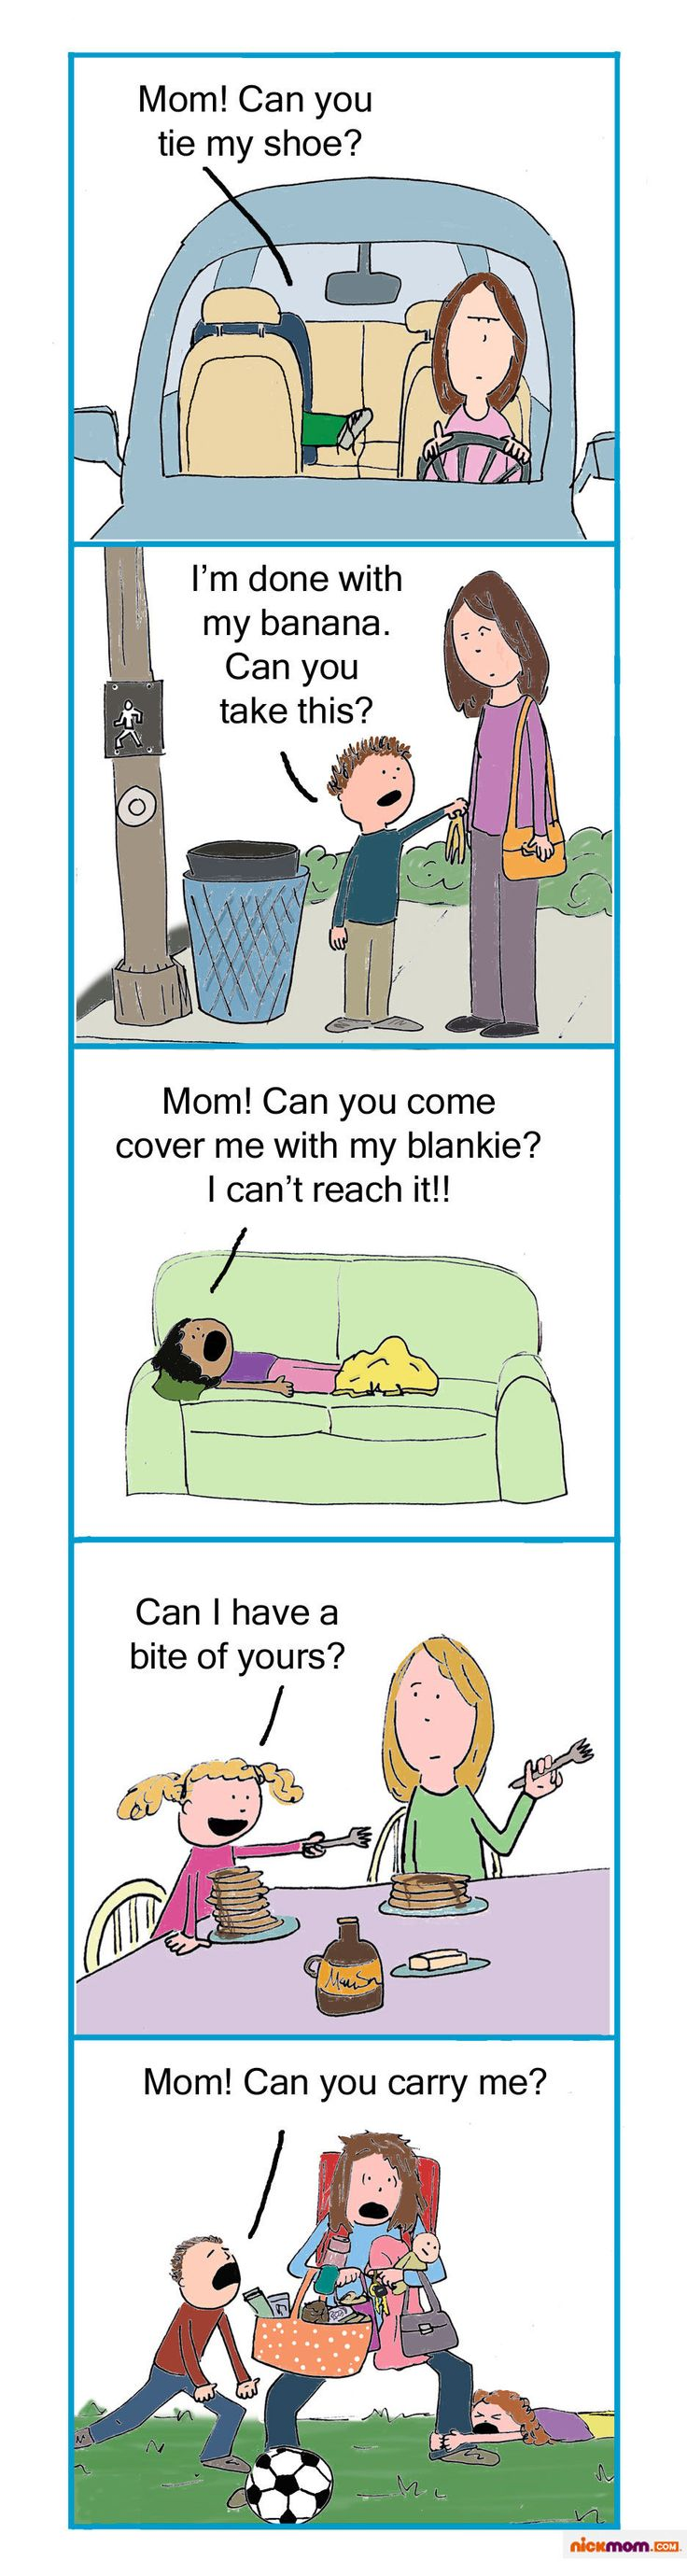 Sometimes, your kids' questions prompt only one answer. Check out 'Are You Seriously Asking Me That? Seriously?', a funny graphic only on NickMom.com!